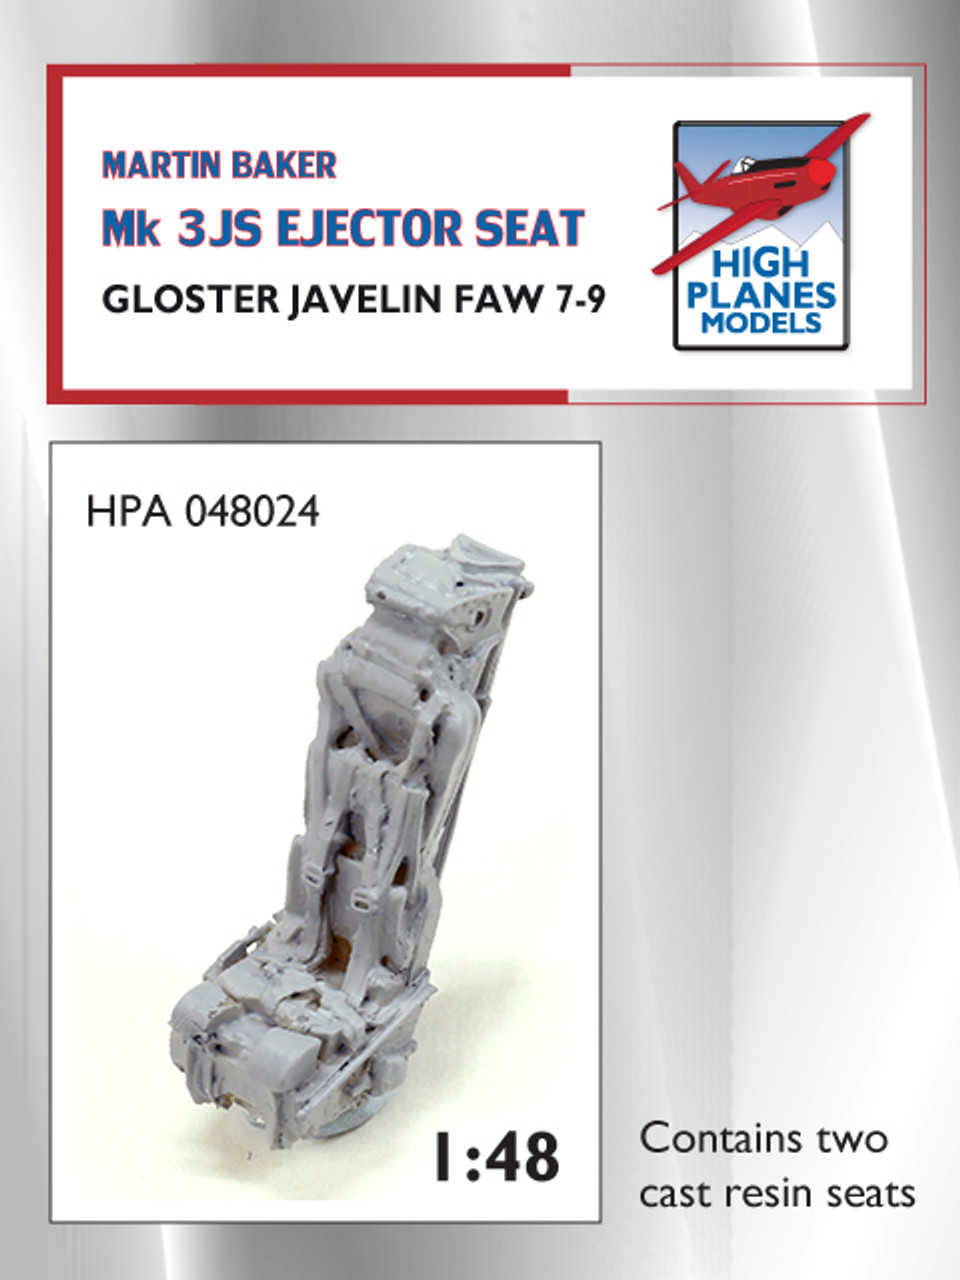 High Planes Martin Baker Mk 3JS Ejector Seats x2 Gloster Javelin Accessories 1:48